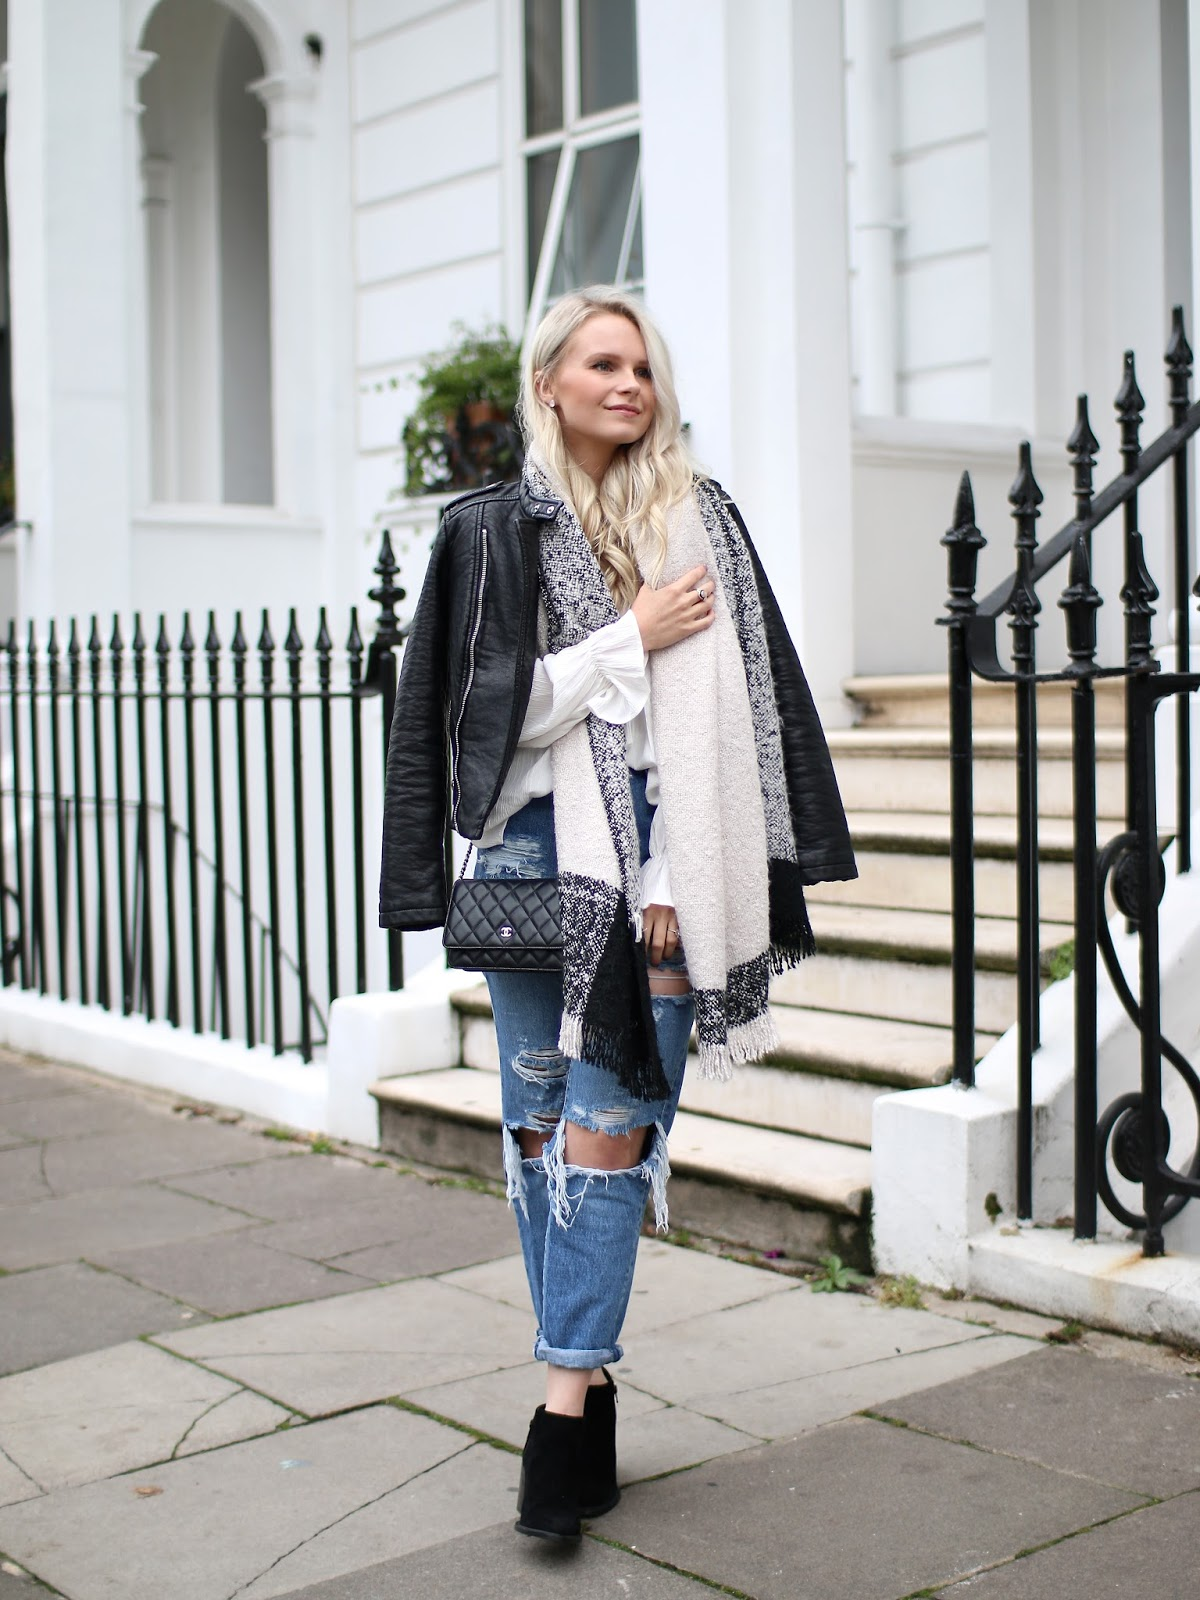 a blonde women with loose curls in her hair standing on the sidewalk in notting hill wearing a warm leather jacket and river island scarf